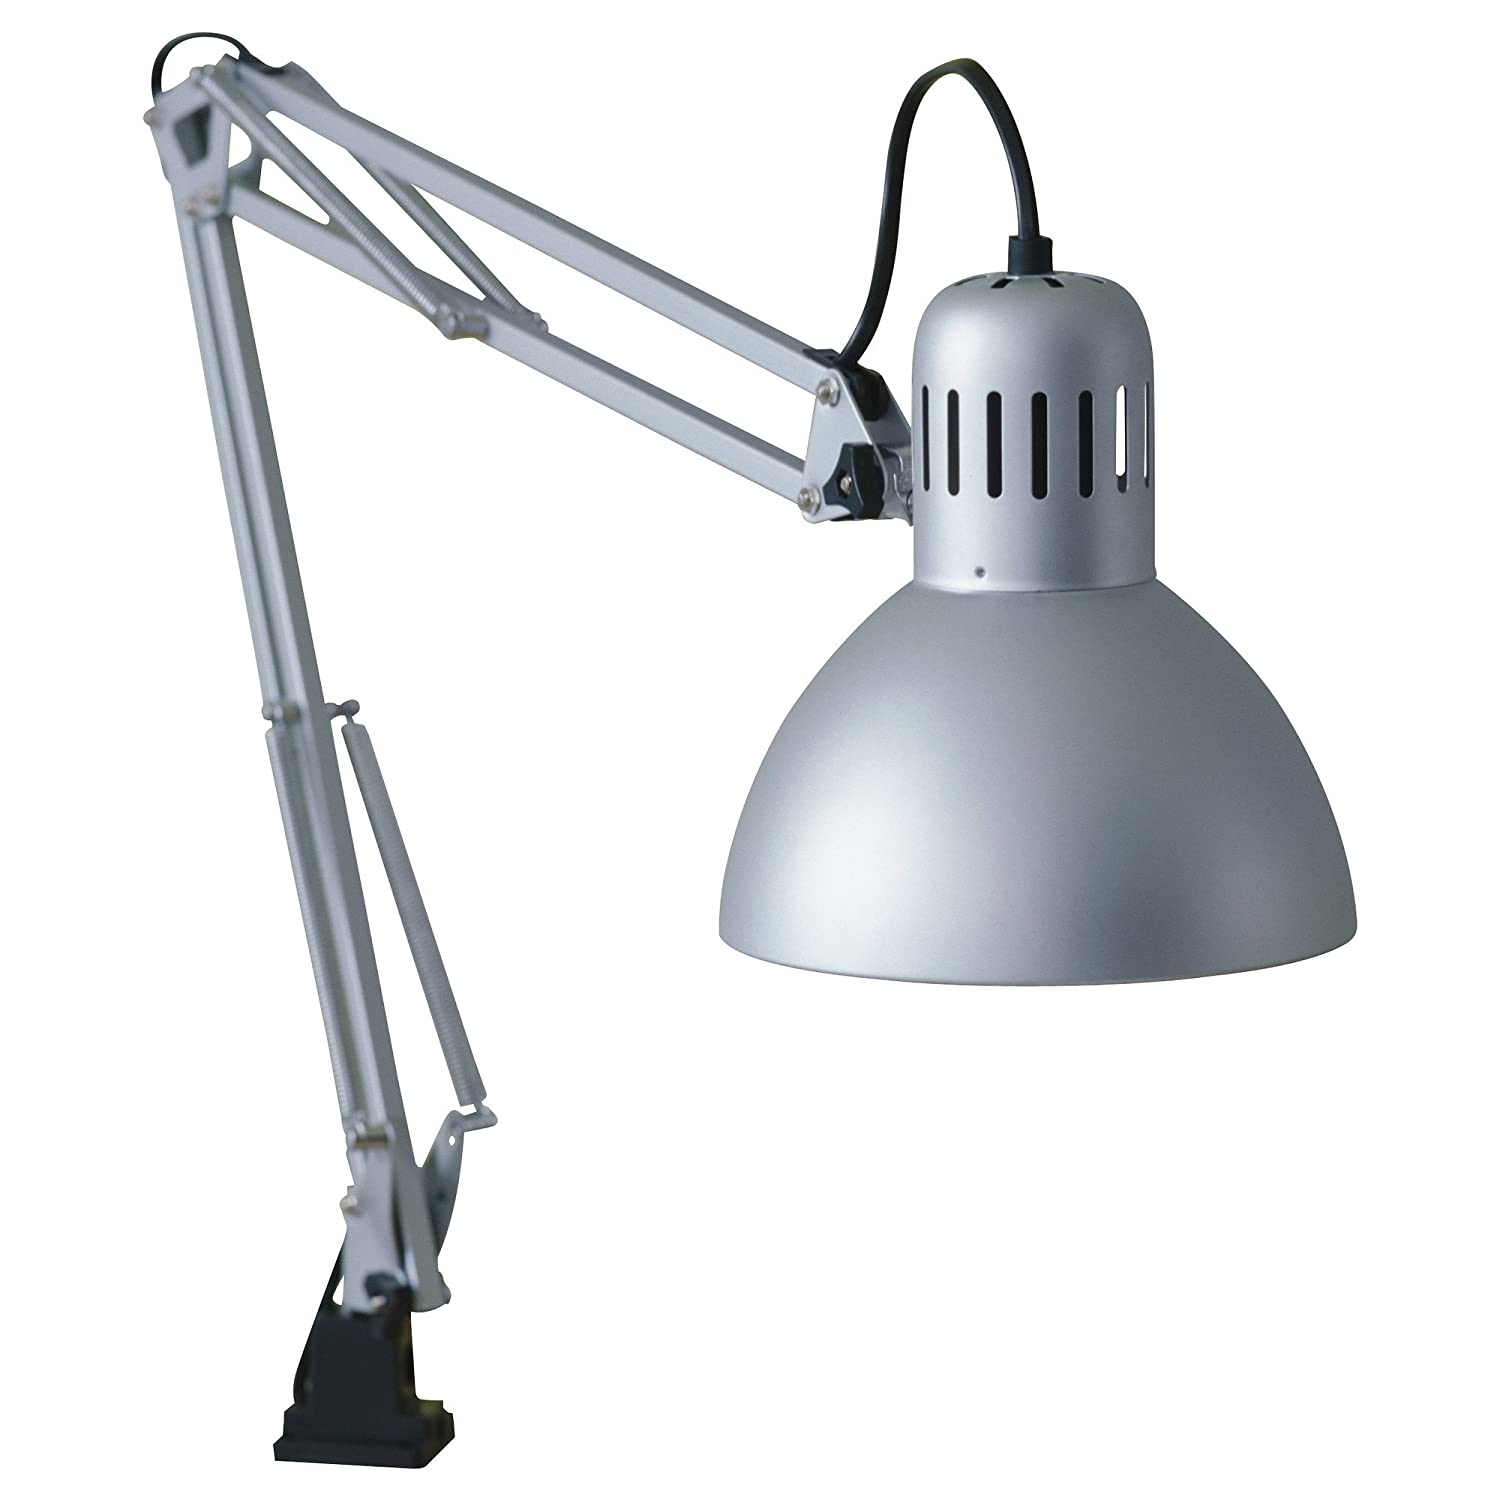 Ikea tertial work lamp silver color amazon mozeypictures Gallery